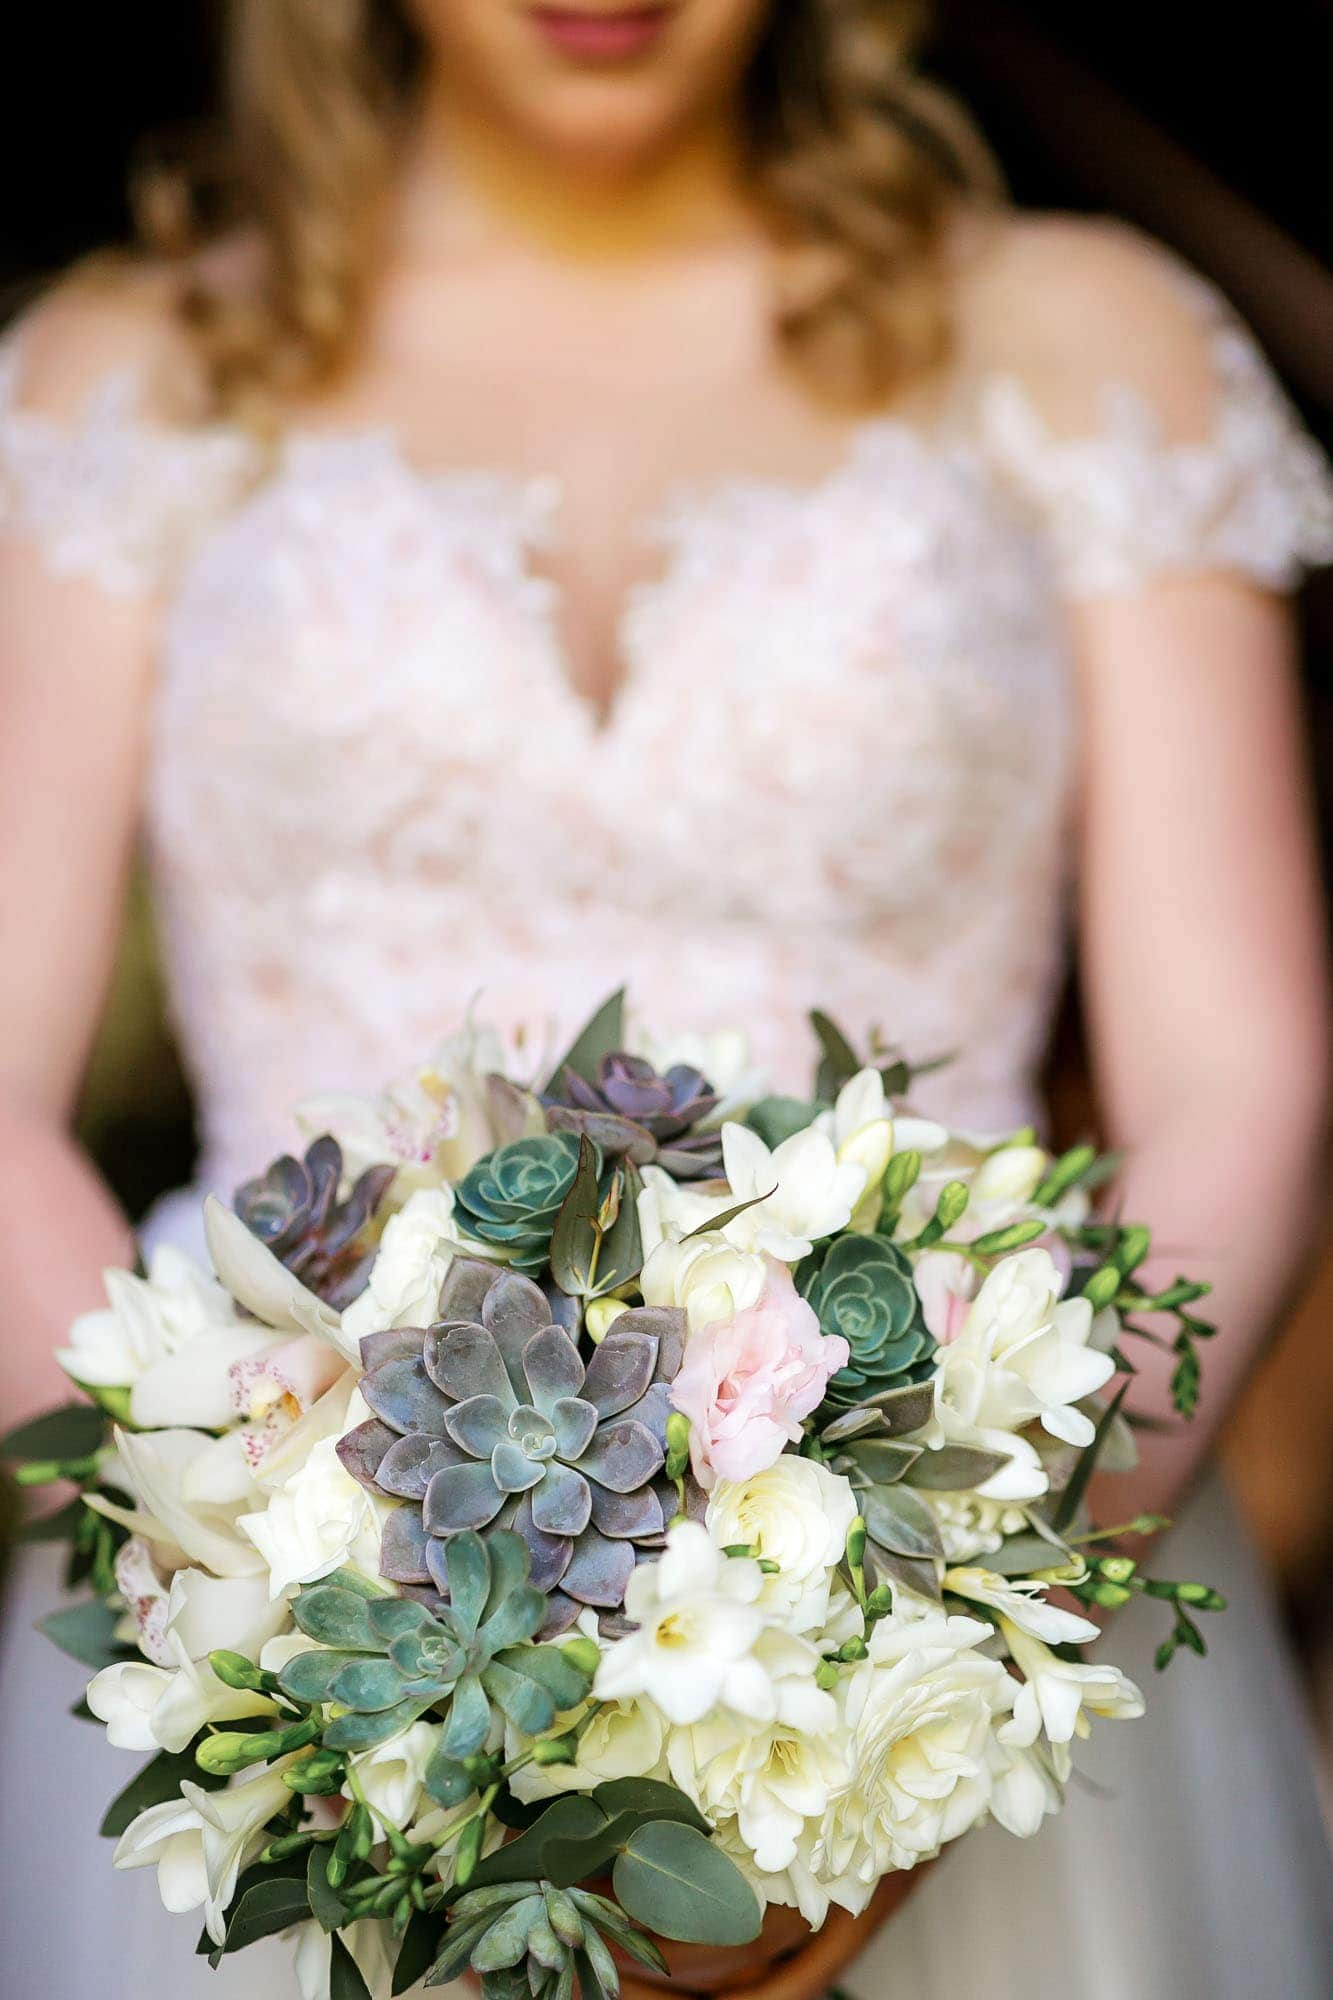 Closeup of the bride's unique bouquet in her hands